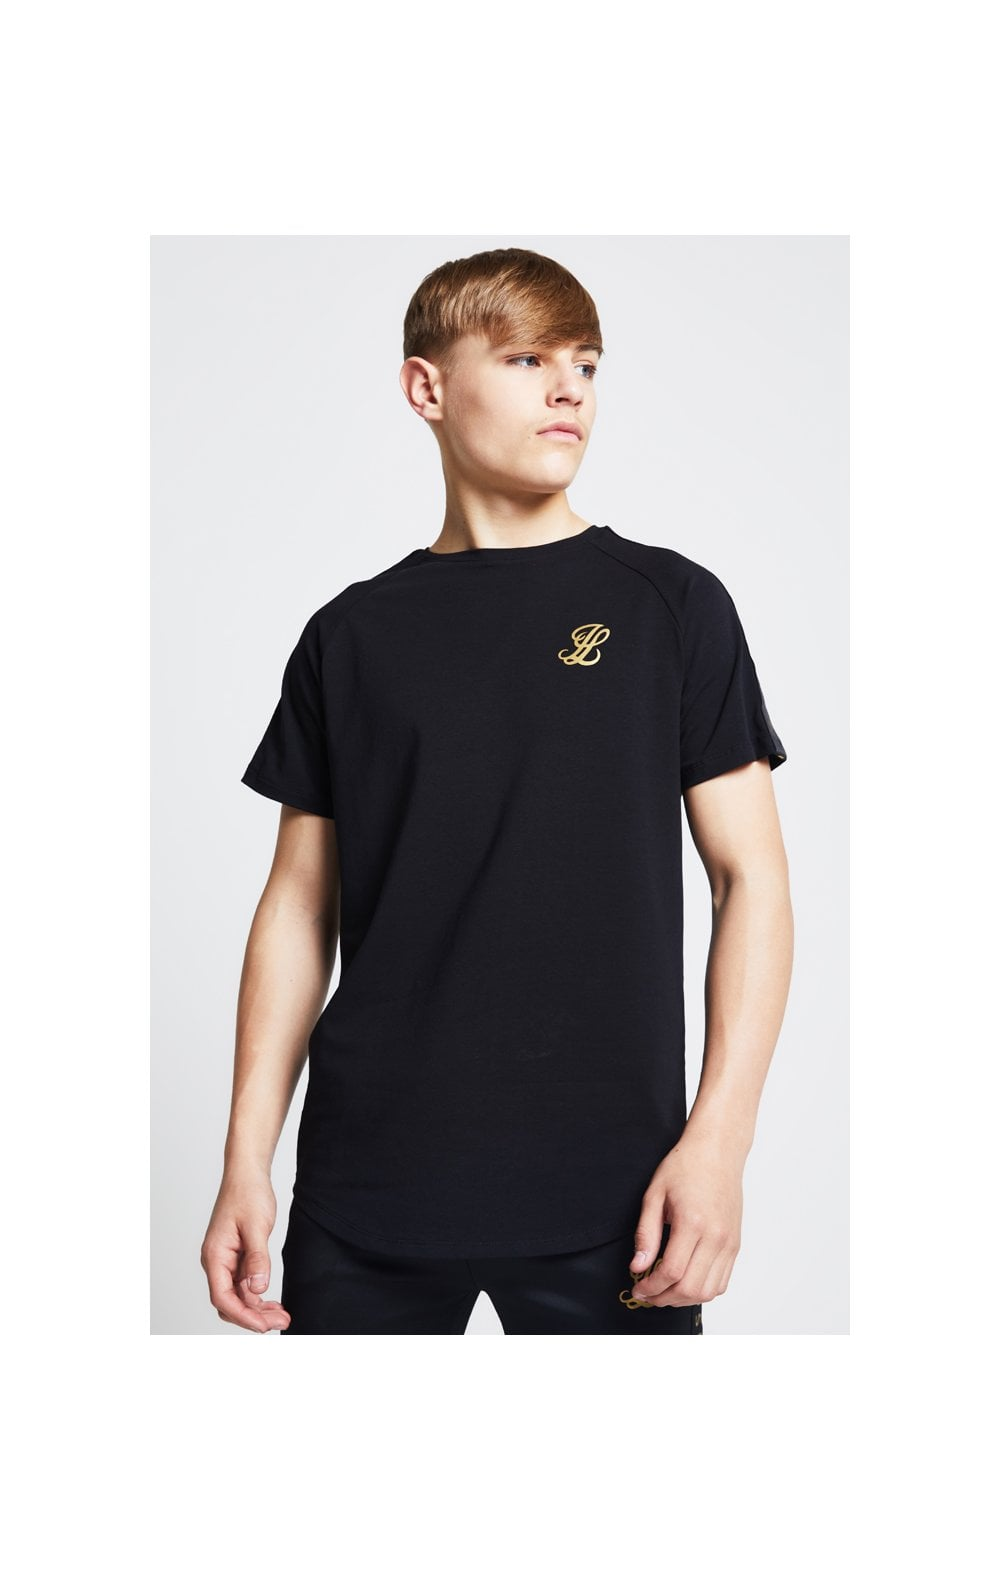 Load image into Gallery viewer, Illusive London Taped Raglan Tee - Black (1)